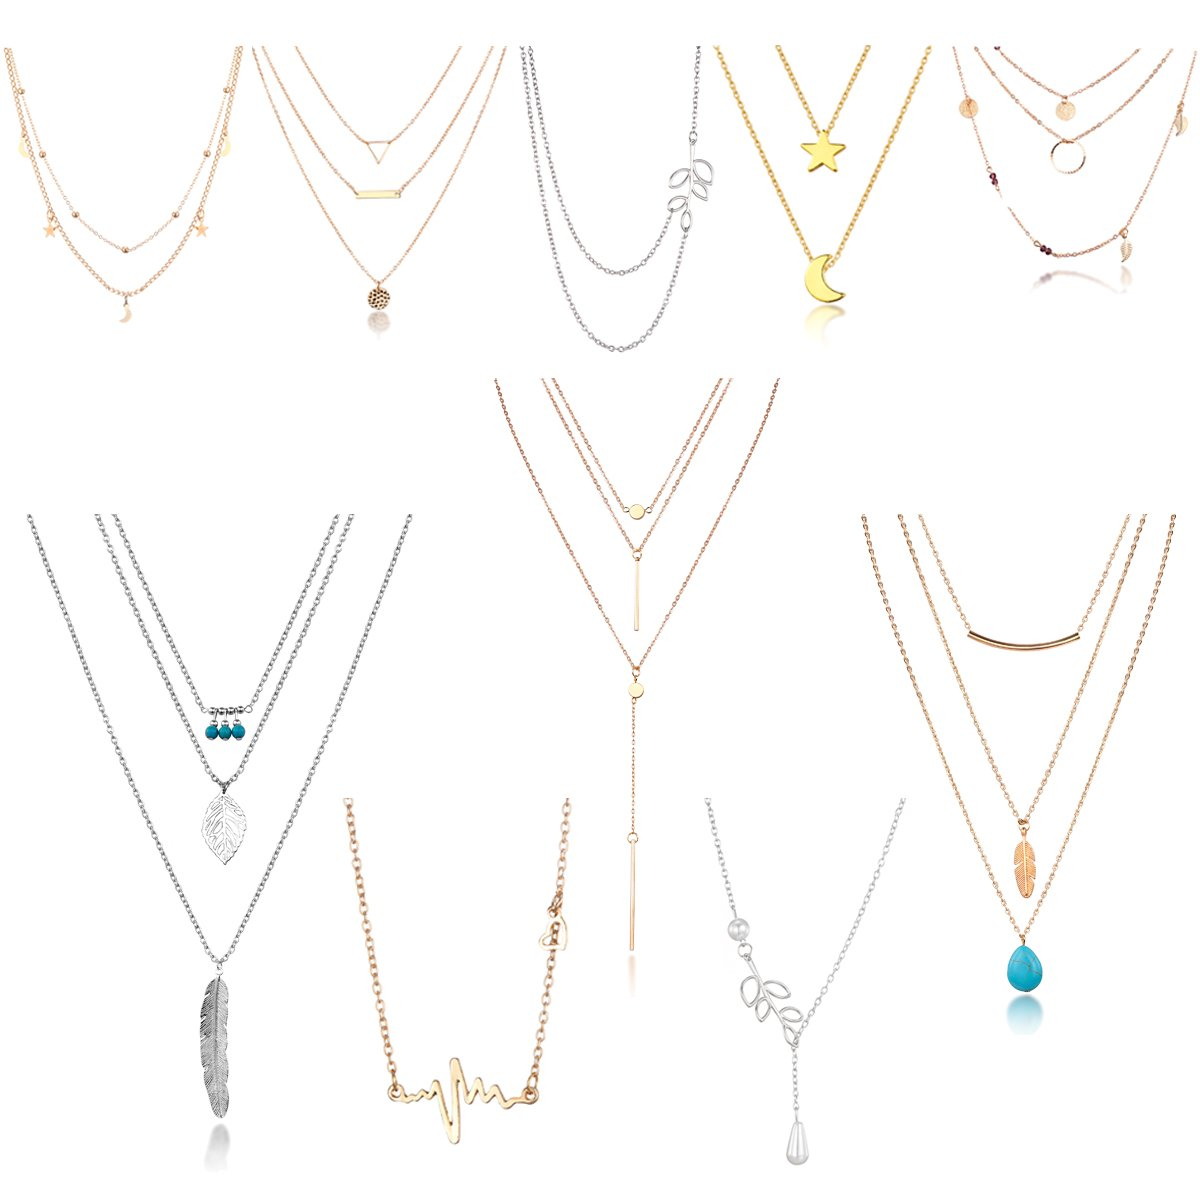 HYZ Boho 10pcs Layered Necklace Pendant Moon Star Turquoise Feather Olive Leaf Heartbeat Coin Chain Girls Women Mother Jewelry Set